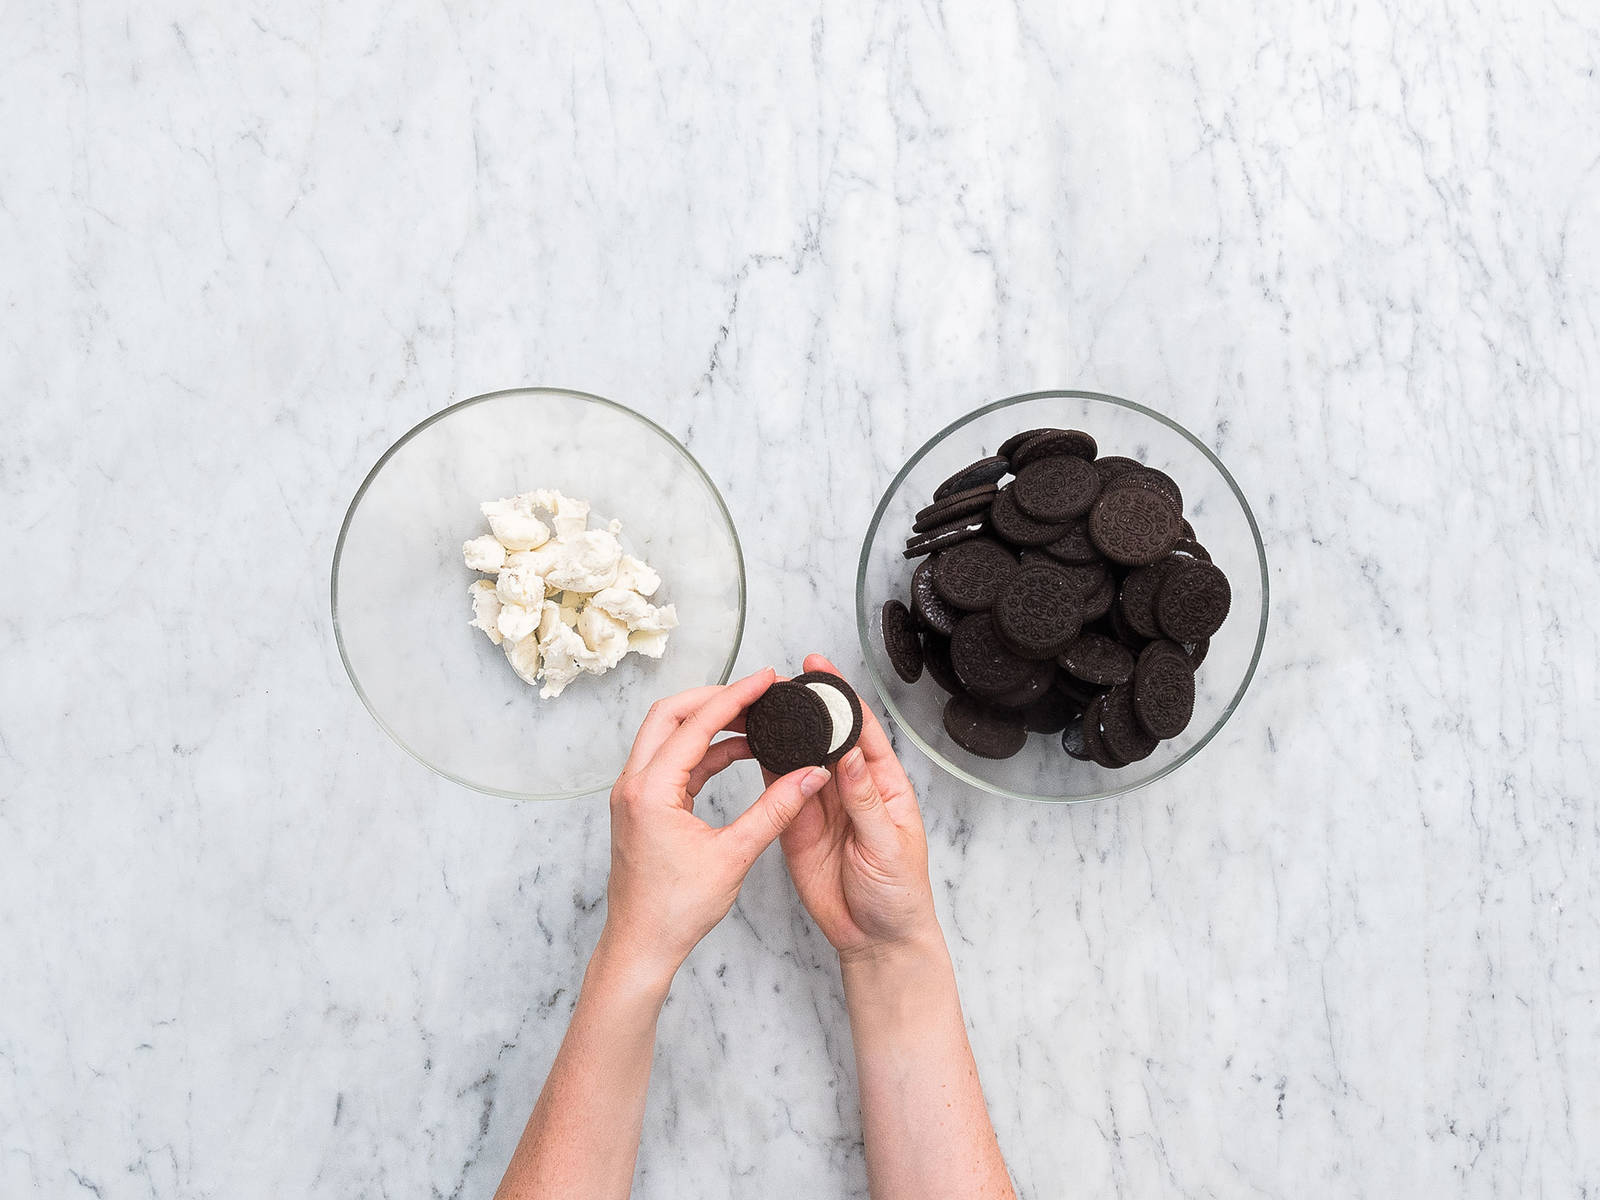 Split open Oreos, dividing the cookies into one bowl and the frosting into another. Set aside ten cookies for garnish. Mix together the Oreo frosting and the cream cheese. Halve the mixture and combine one half with raspberry jam.